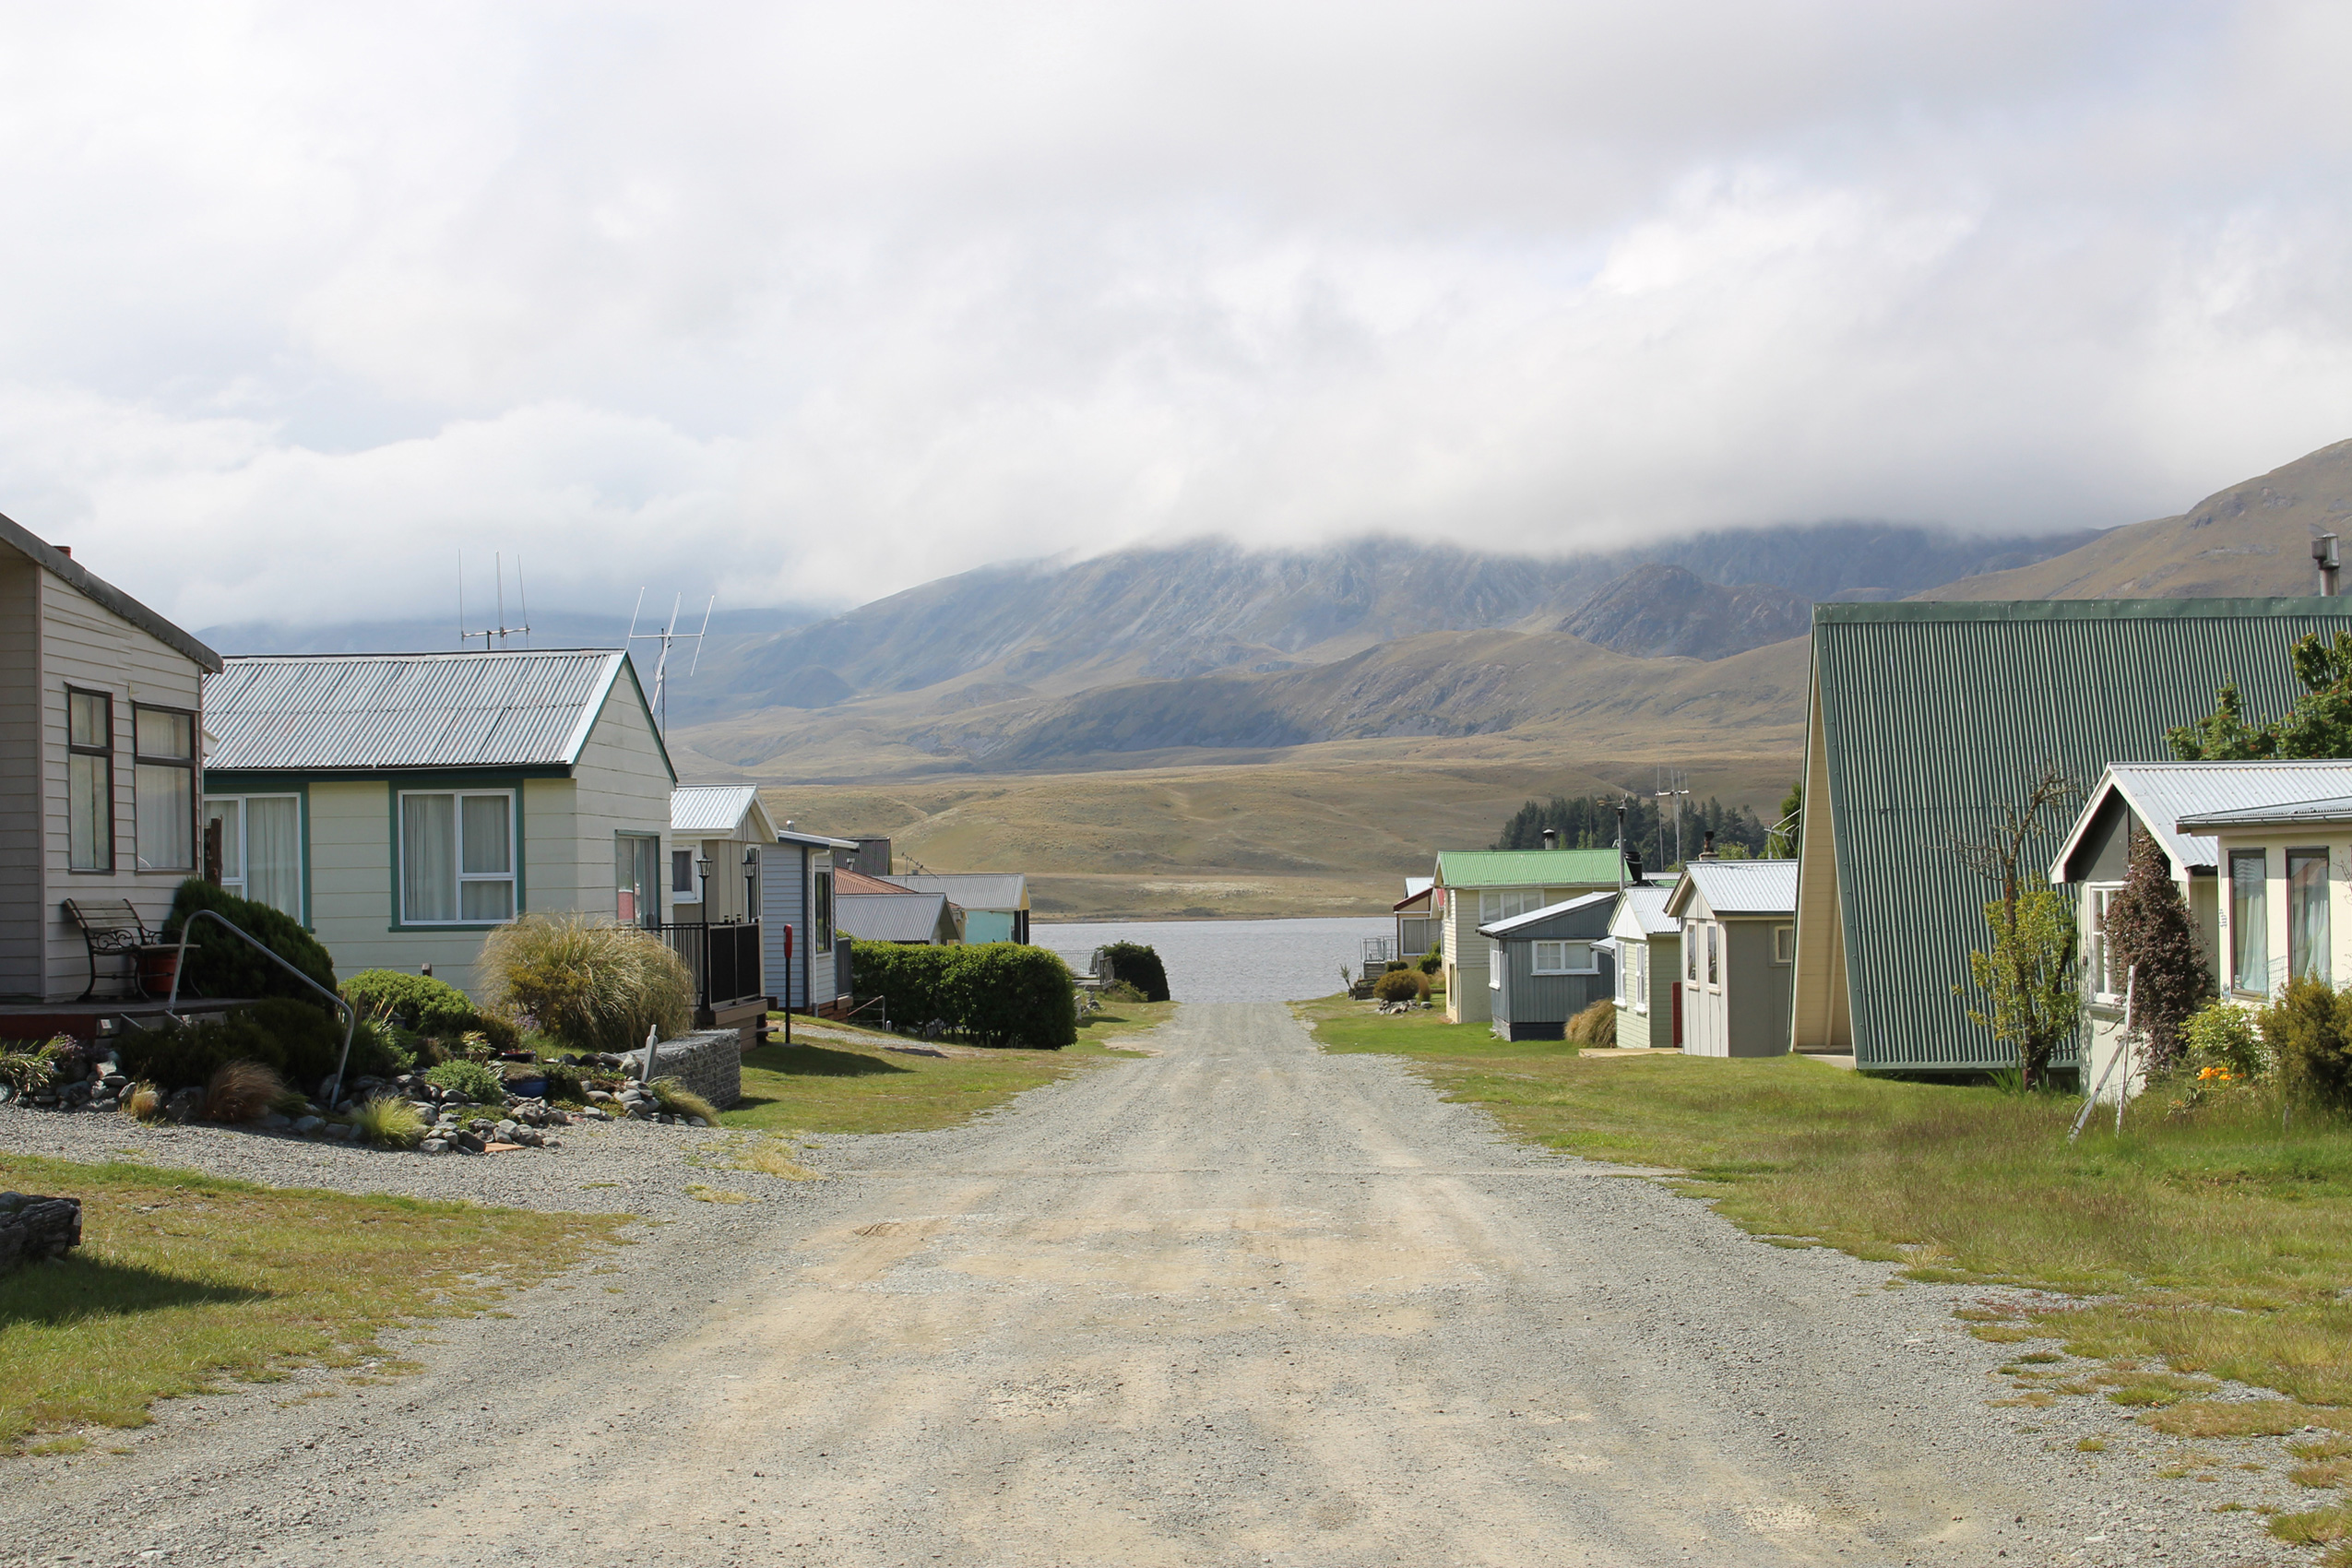 Lake Clearwater in the foothills of the South Alps – a typical New Zealand holiday village where there's lifestyle aplenty – a lot of 'chummery' but not much privacy